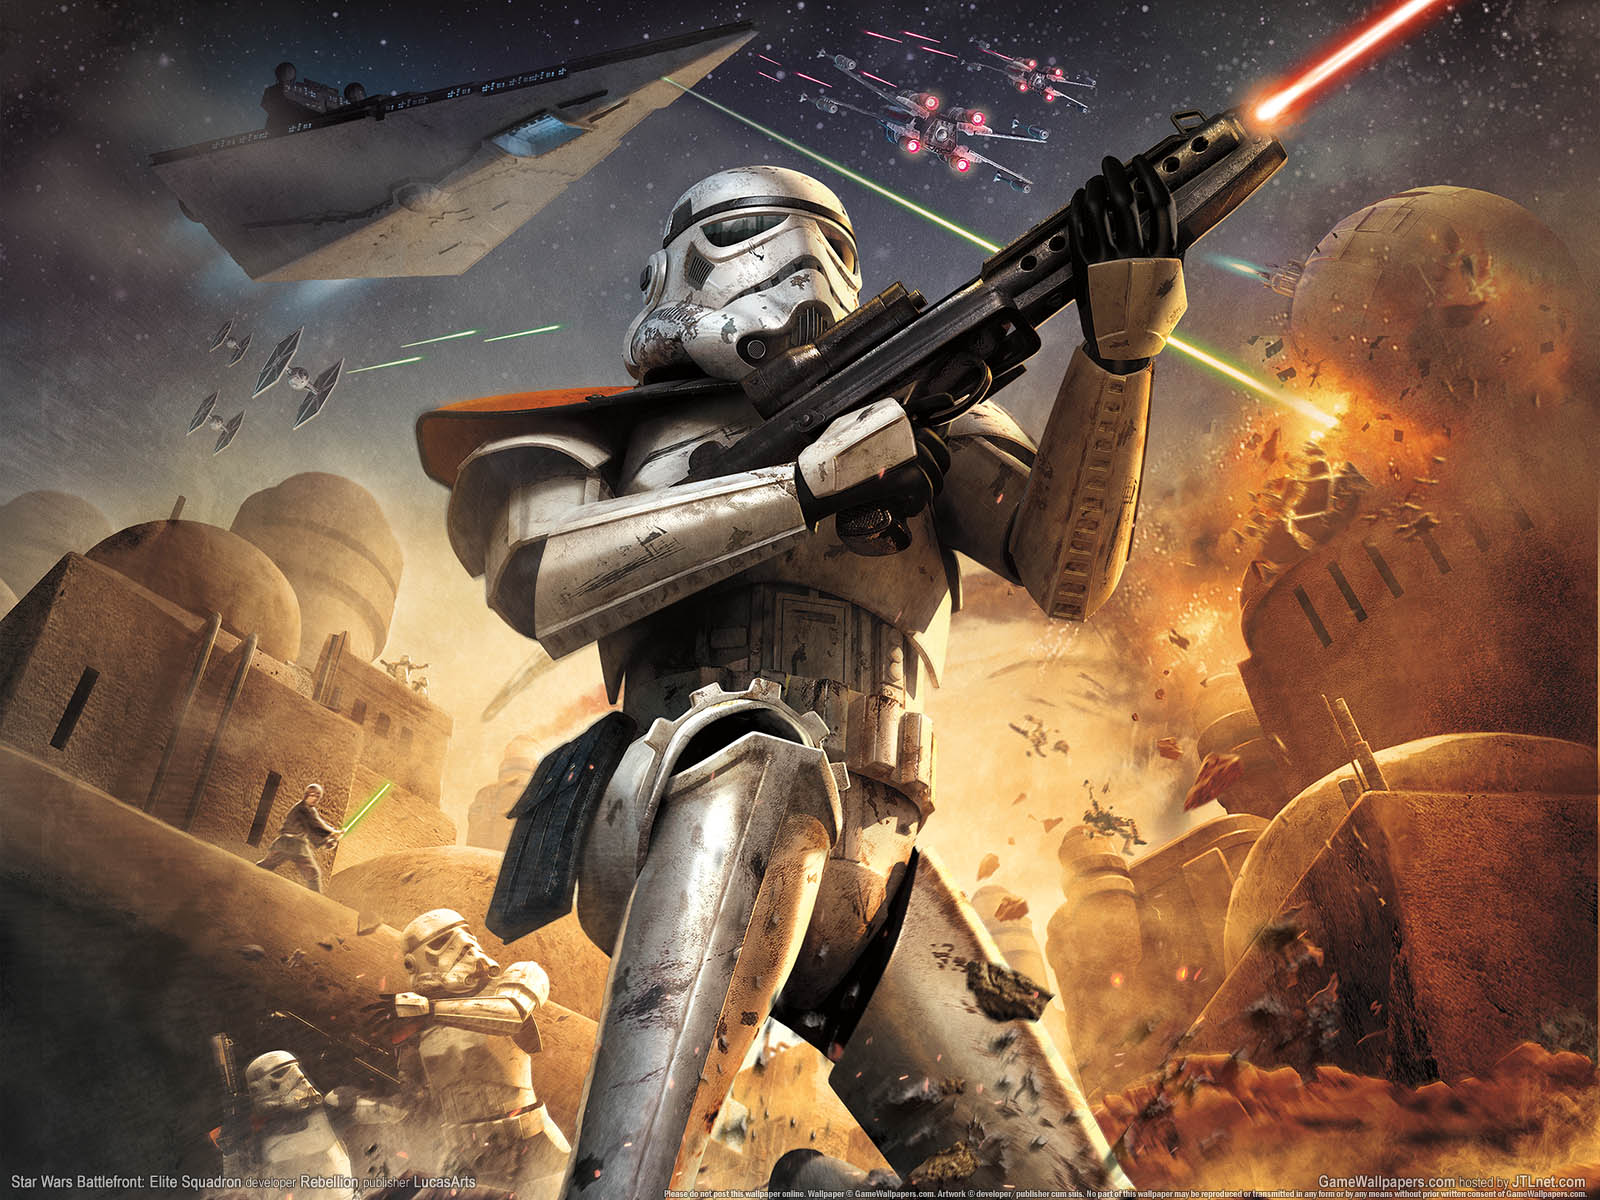 Free Download Star Wars Battlefront Elite Squadron Wallpapers Hd